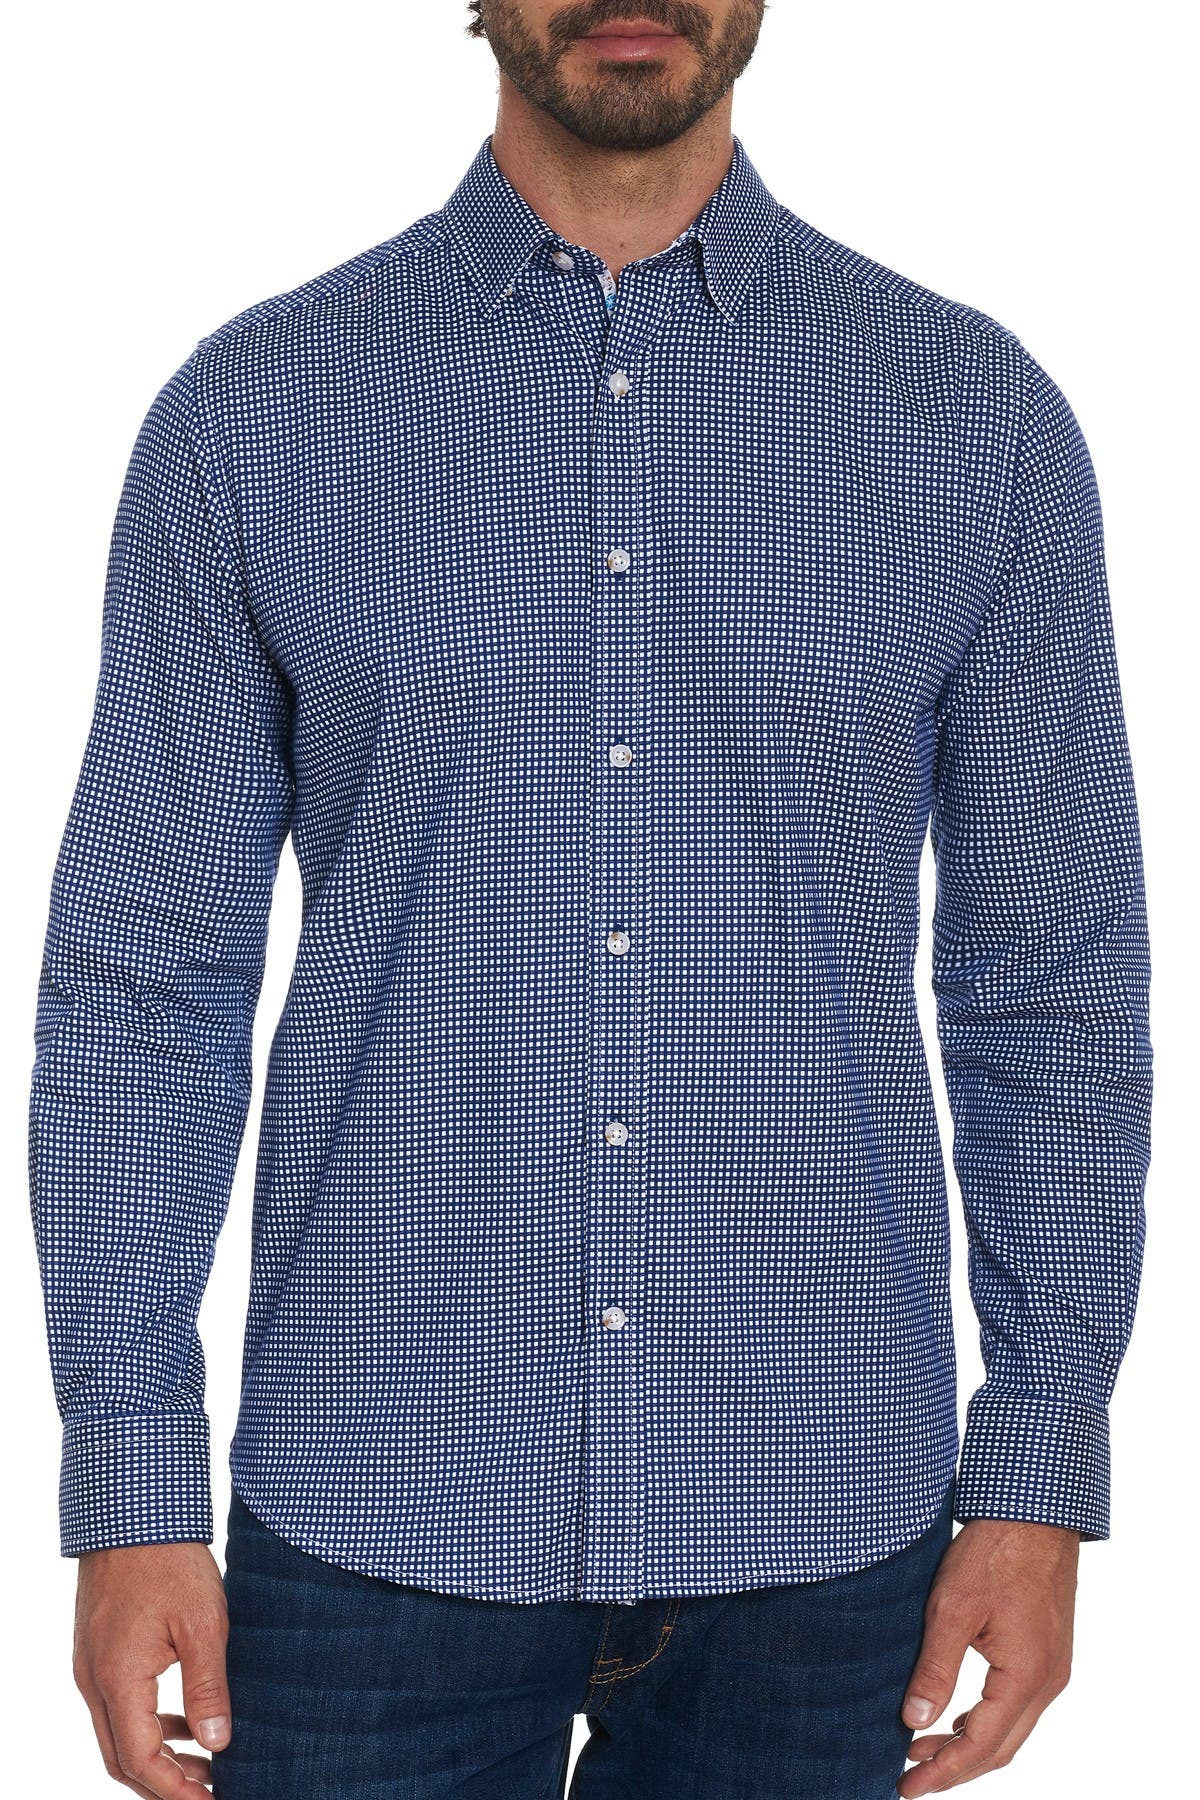 Image of Robert Graham Check Augusto Tailored Fit Shirt